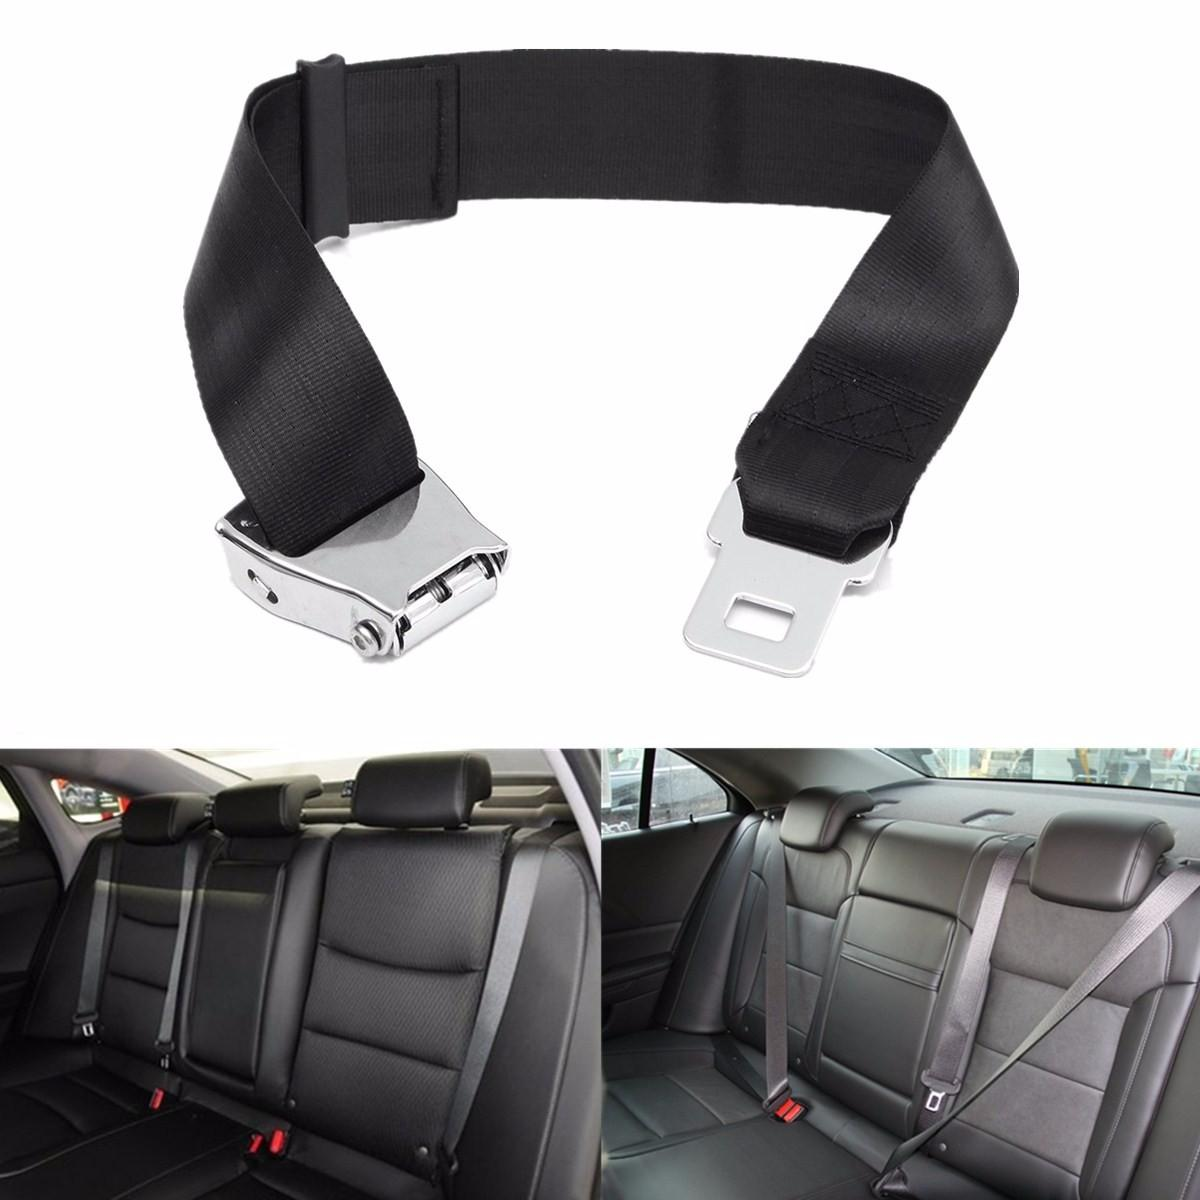 2018 Adjustable Black Airplane Seat Belt Extension Extender Buckle Aircraft Extended High Strength Polyester Webbing From Zwell Co Ltd